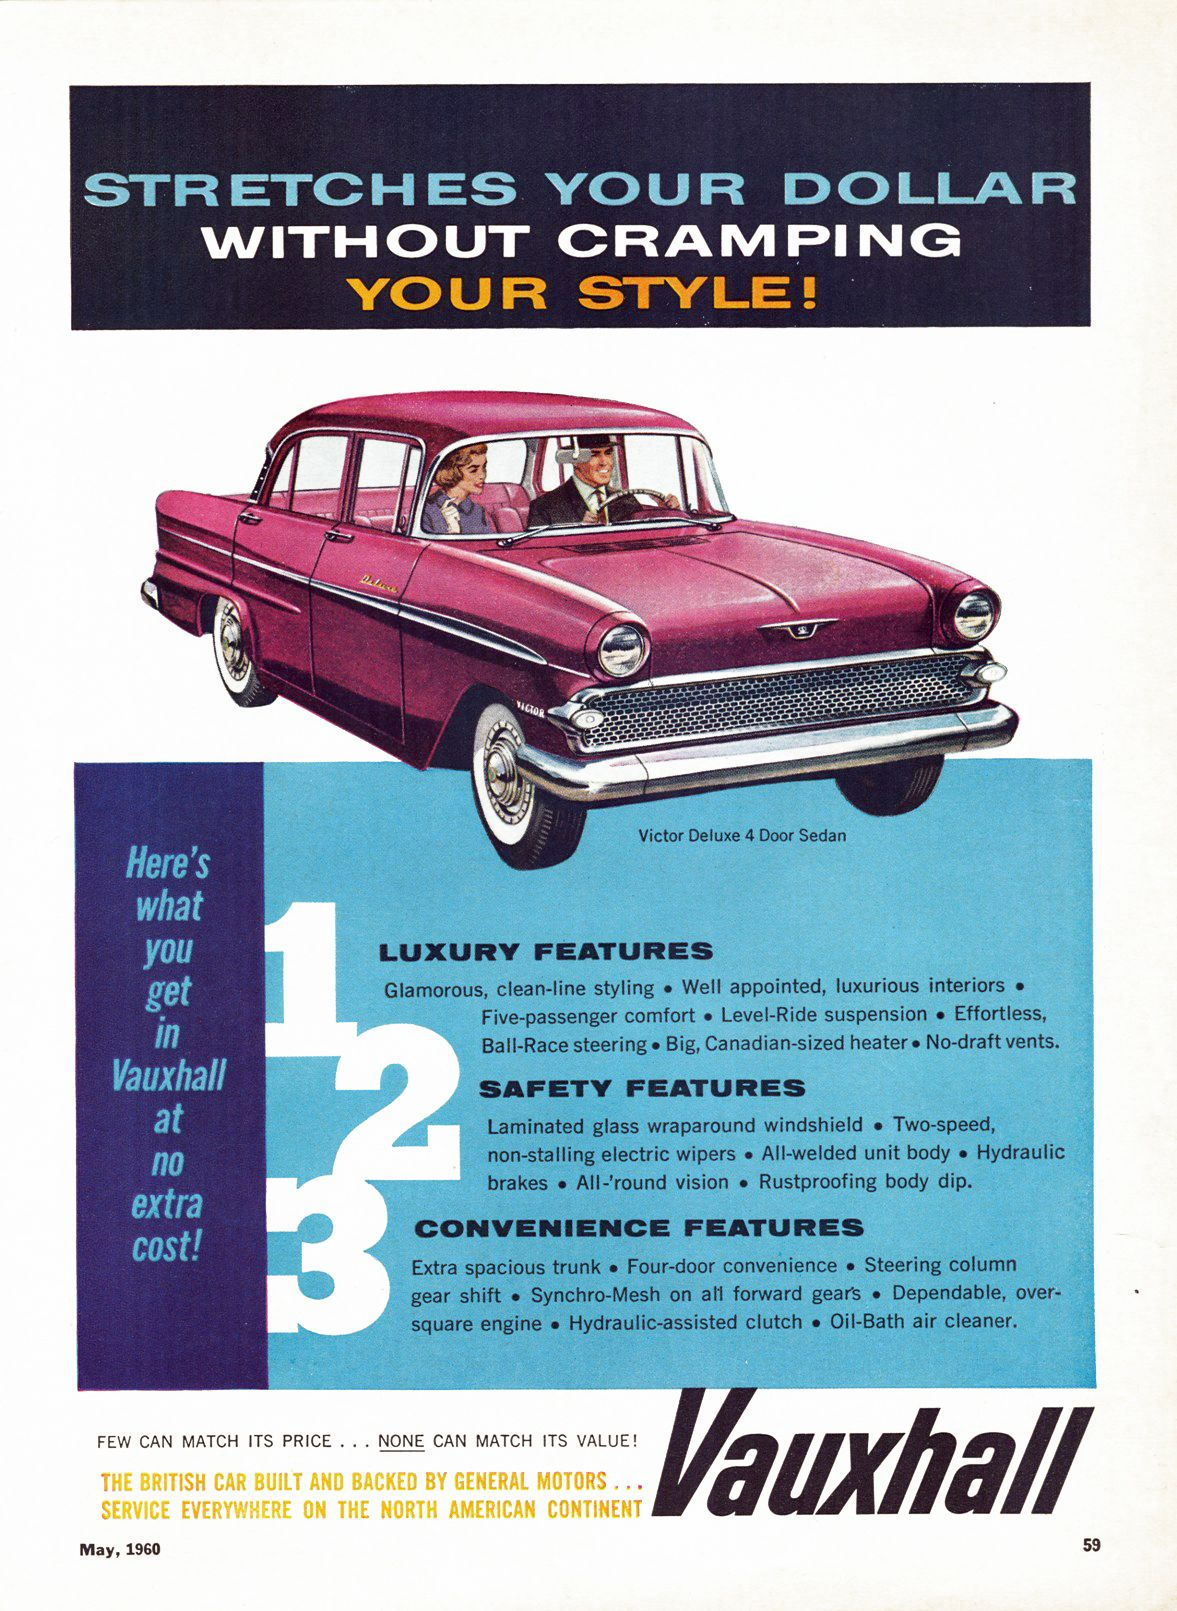 Pin by Chris G on Vintage Car Ads   Pinterest   Golden age and Cars